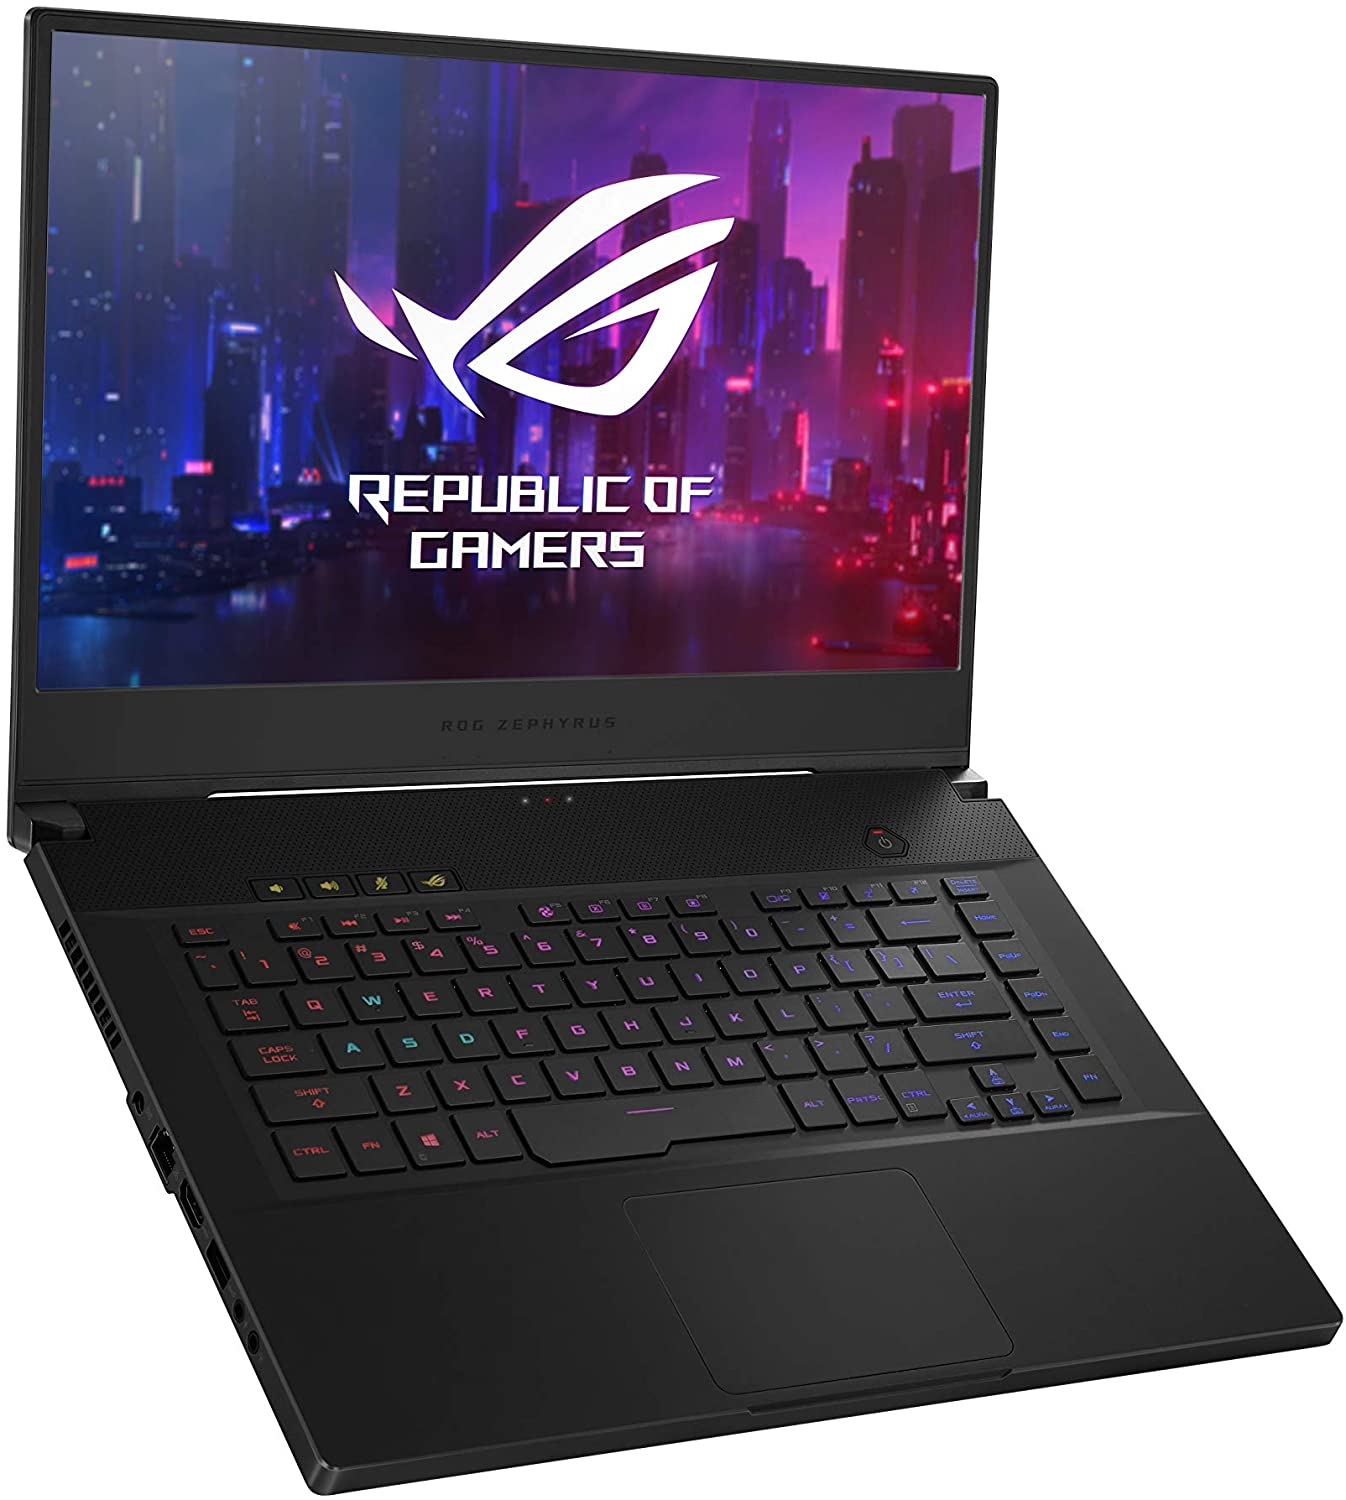 ASUS ROG Zephyrus M Thin and Portable Gaming Laptop